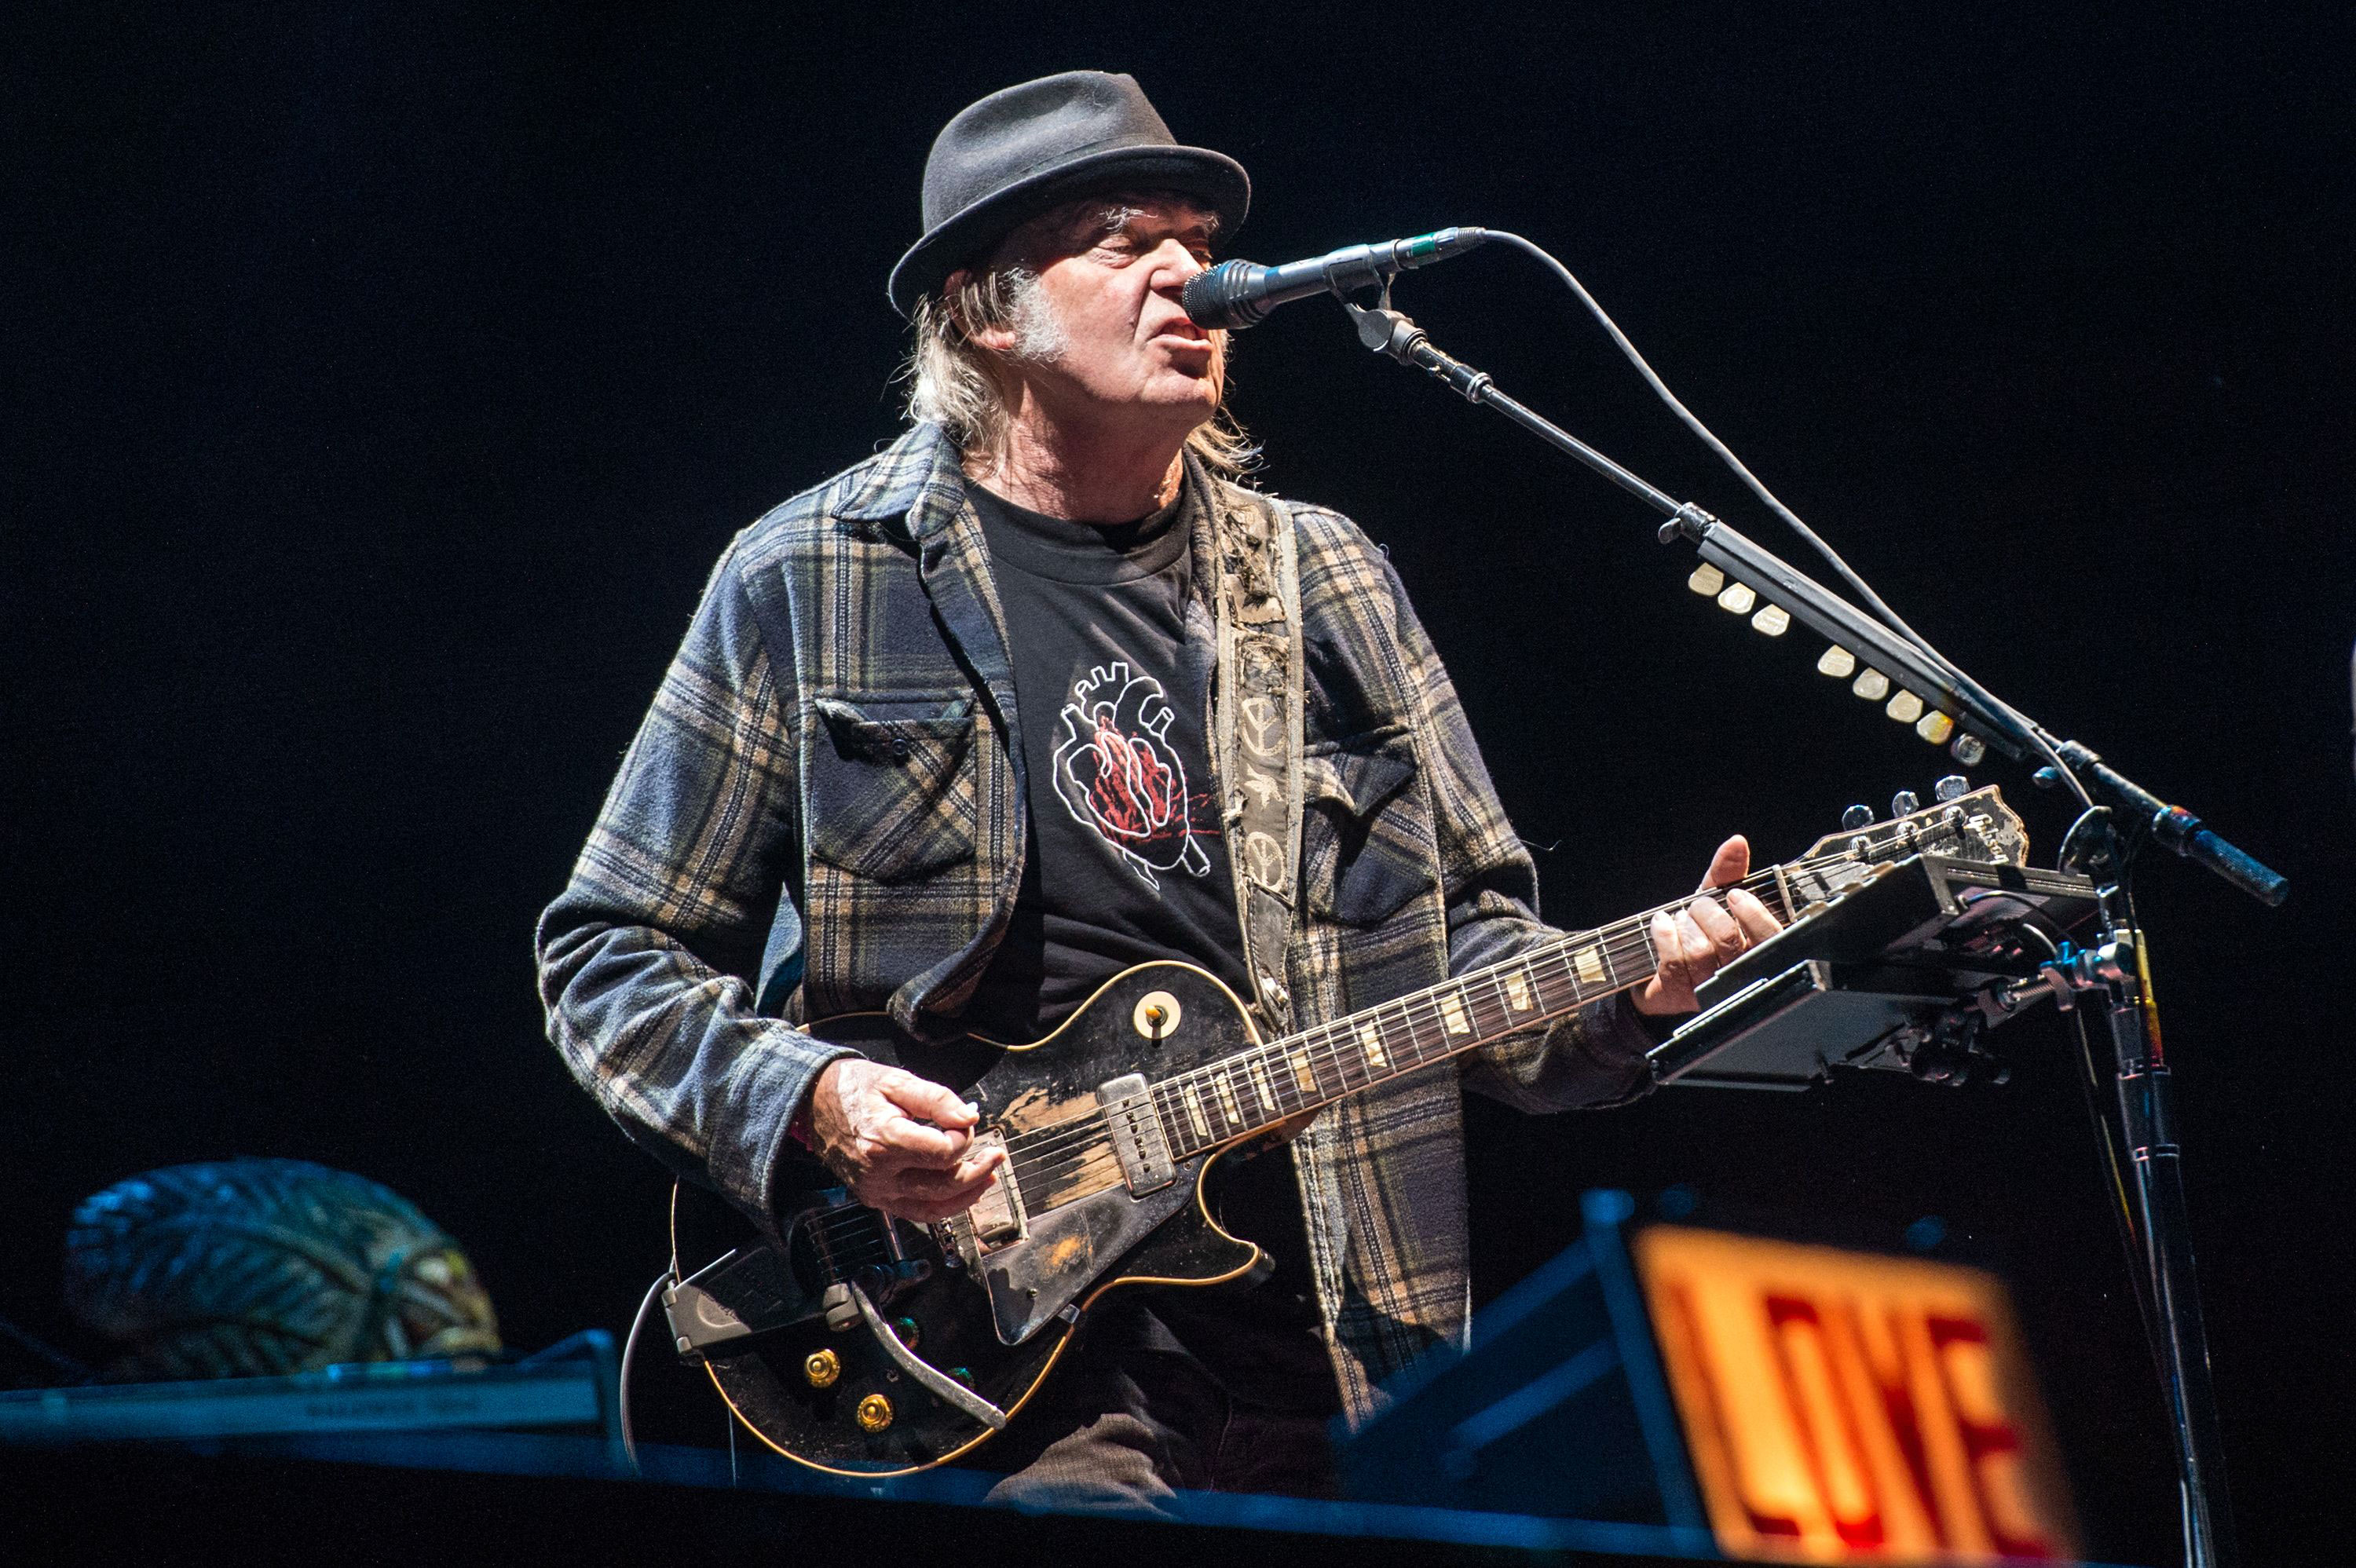 watch neil young perform new love song eternity rolling stone. Black Bedroom Furniture Sets. Home Design Ideas